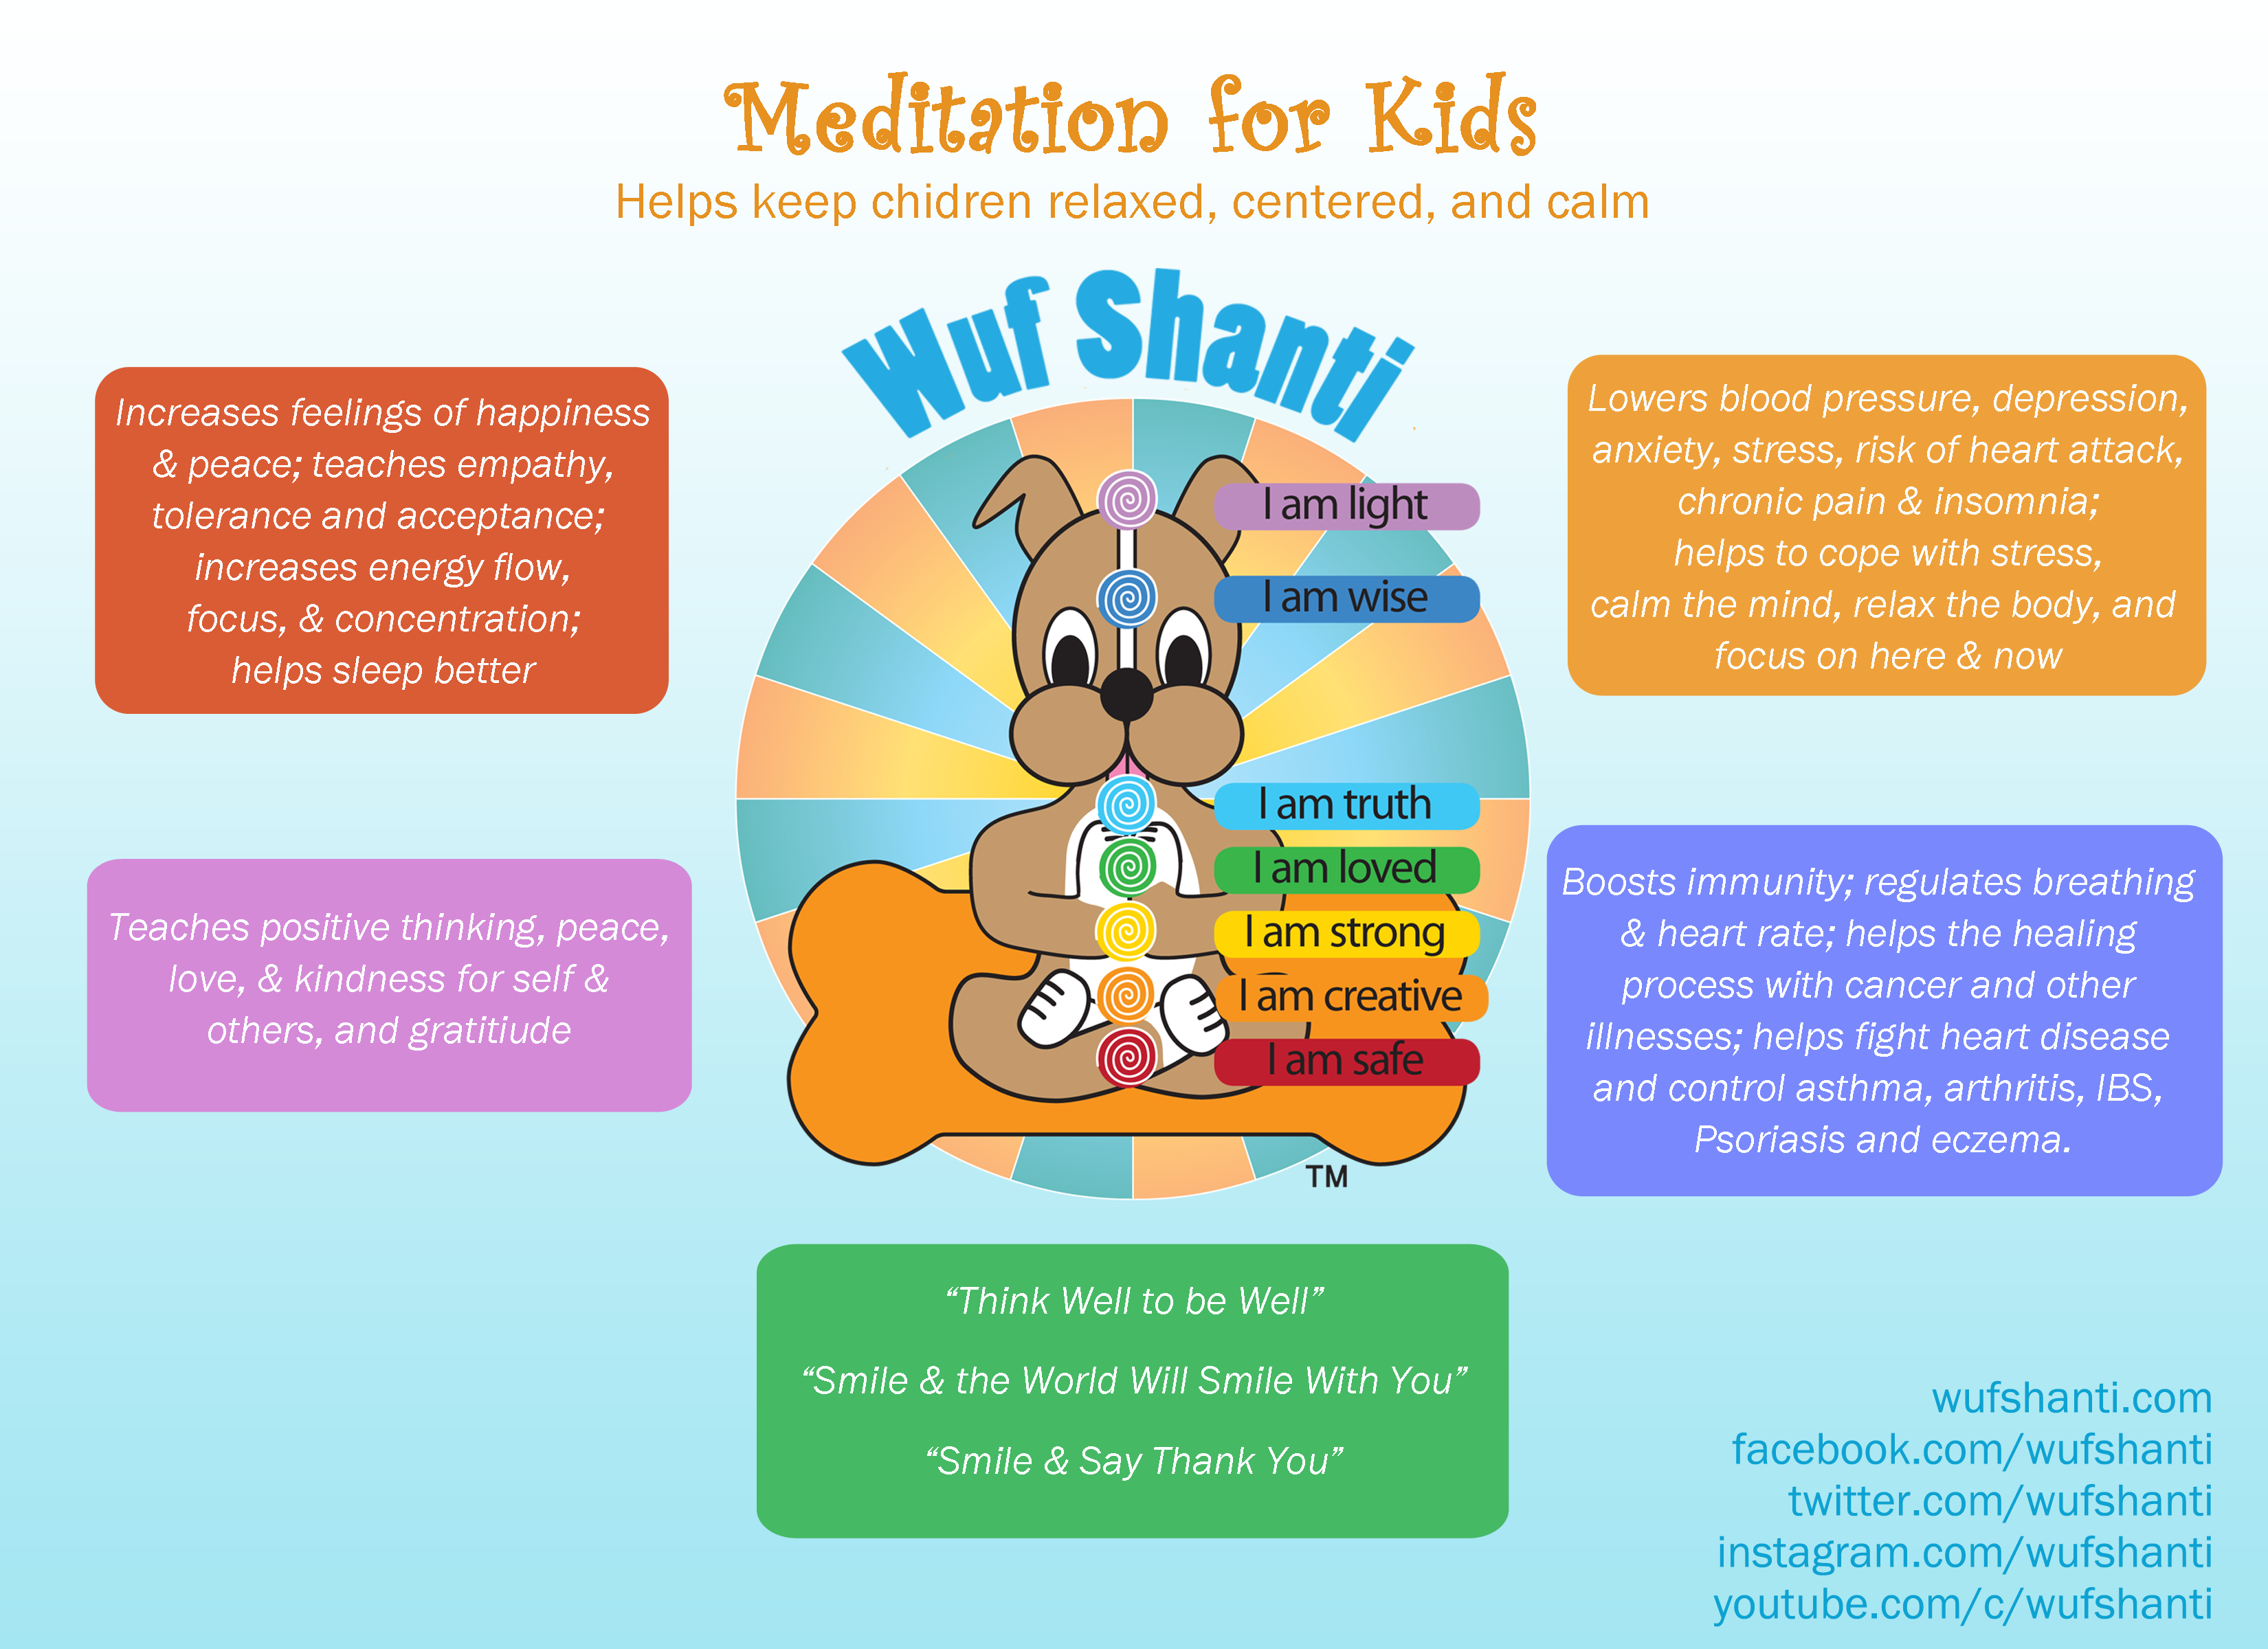 Meditation-for-kids infographic tells health benefits of ...